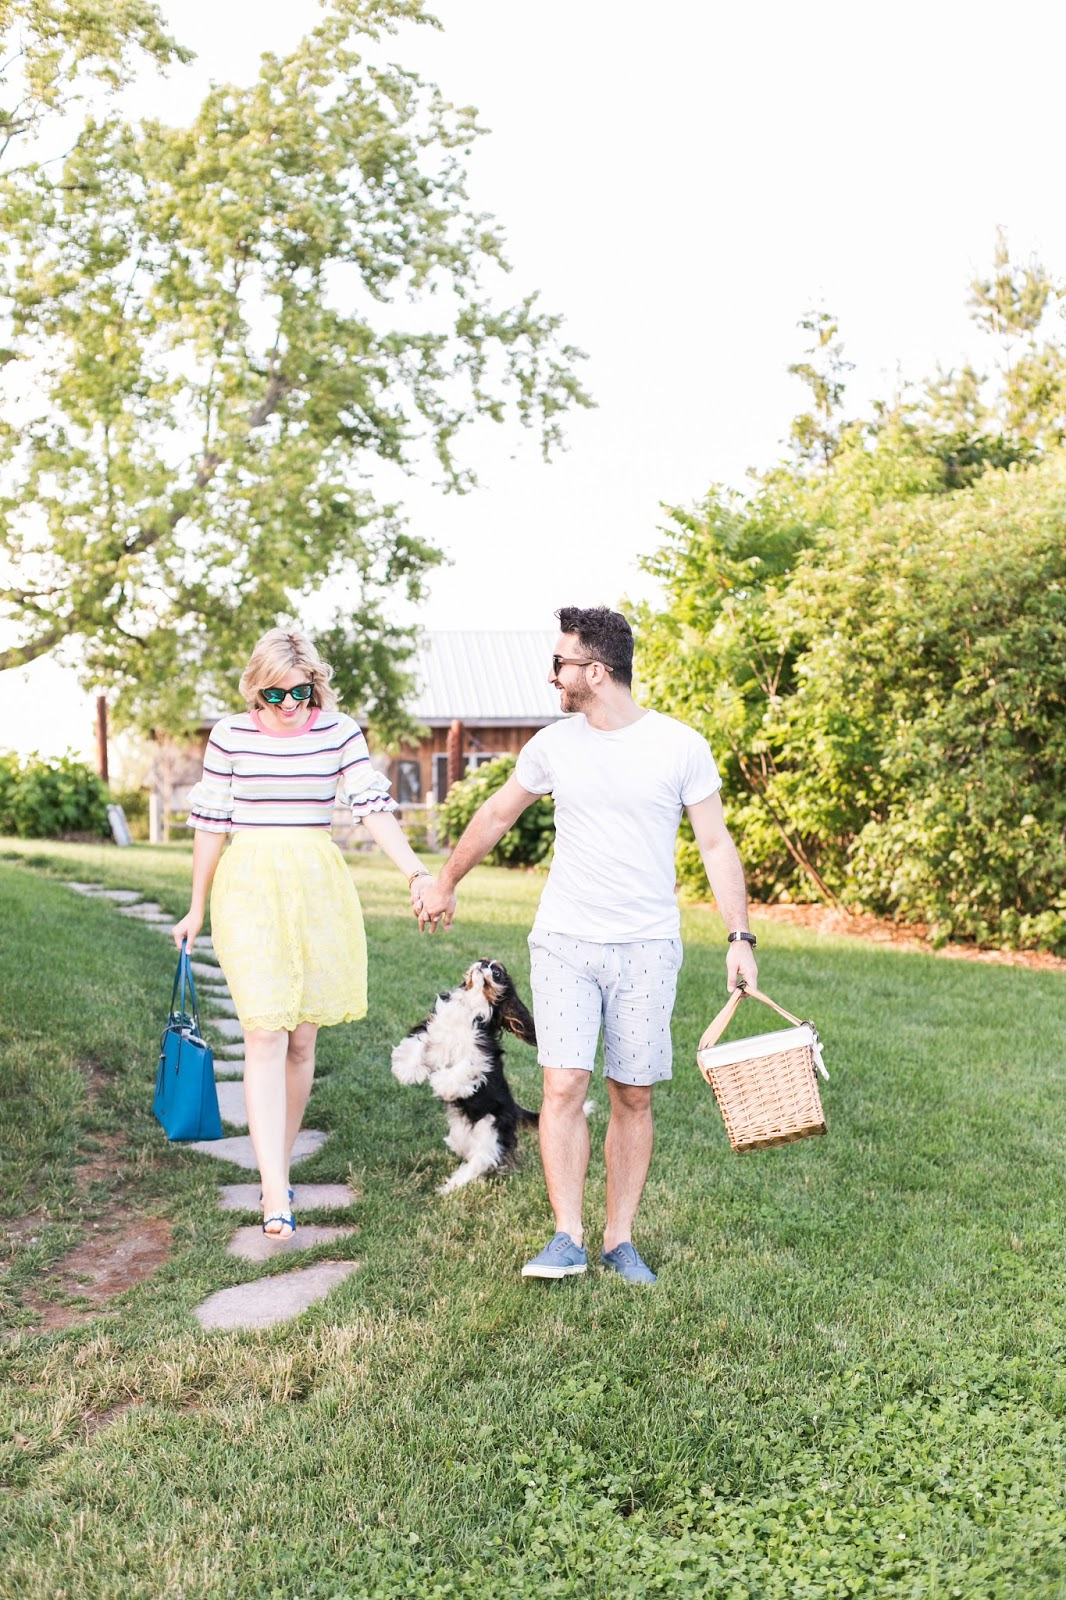 Bijuleni - Couples casual #ootd for a picnic with Cavalier King Charles Spaniel puppy